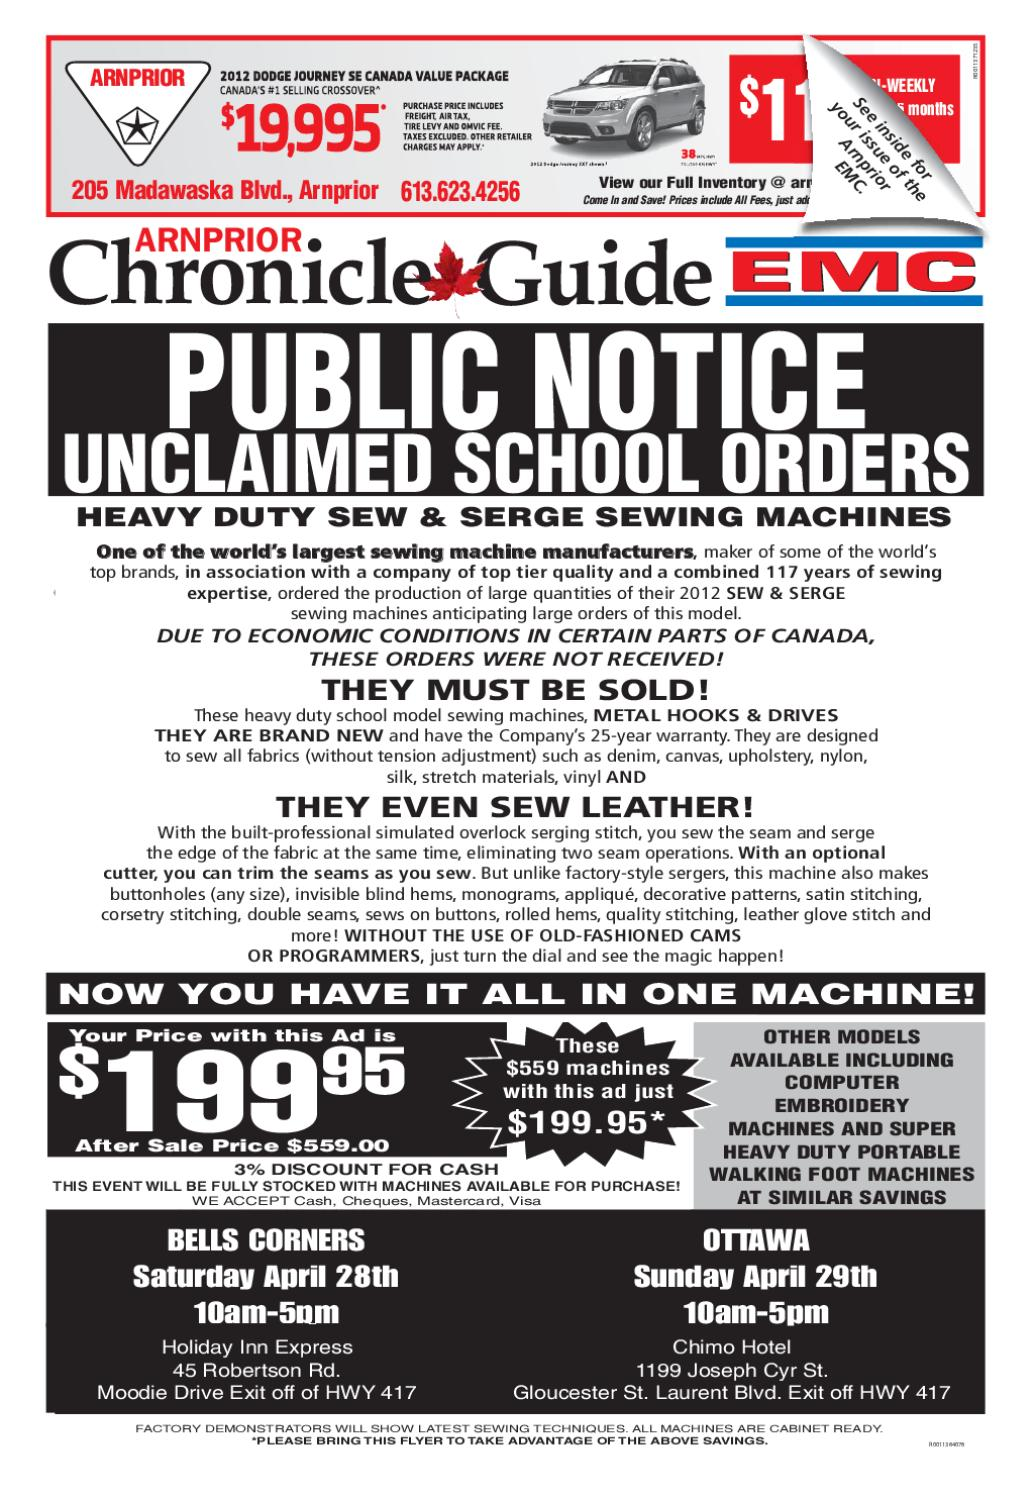 3123bae0bd5d Arnprior Chronicle Guide EMC by Metroland East - Arnprior Chronicle-Guide -  issuu